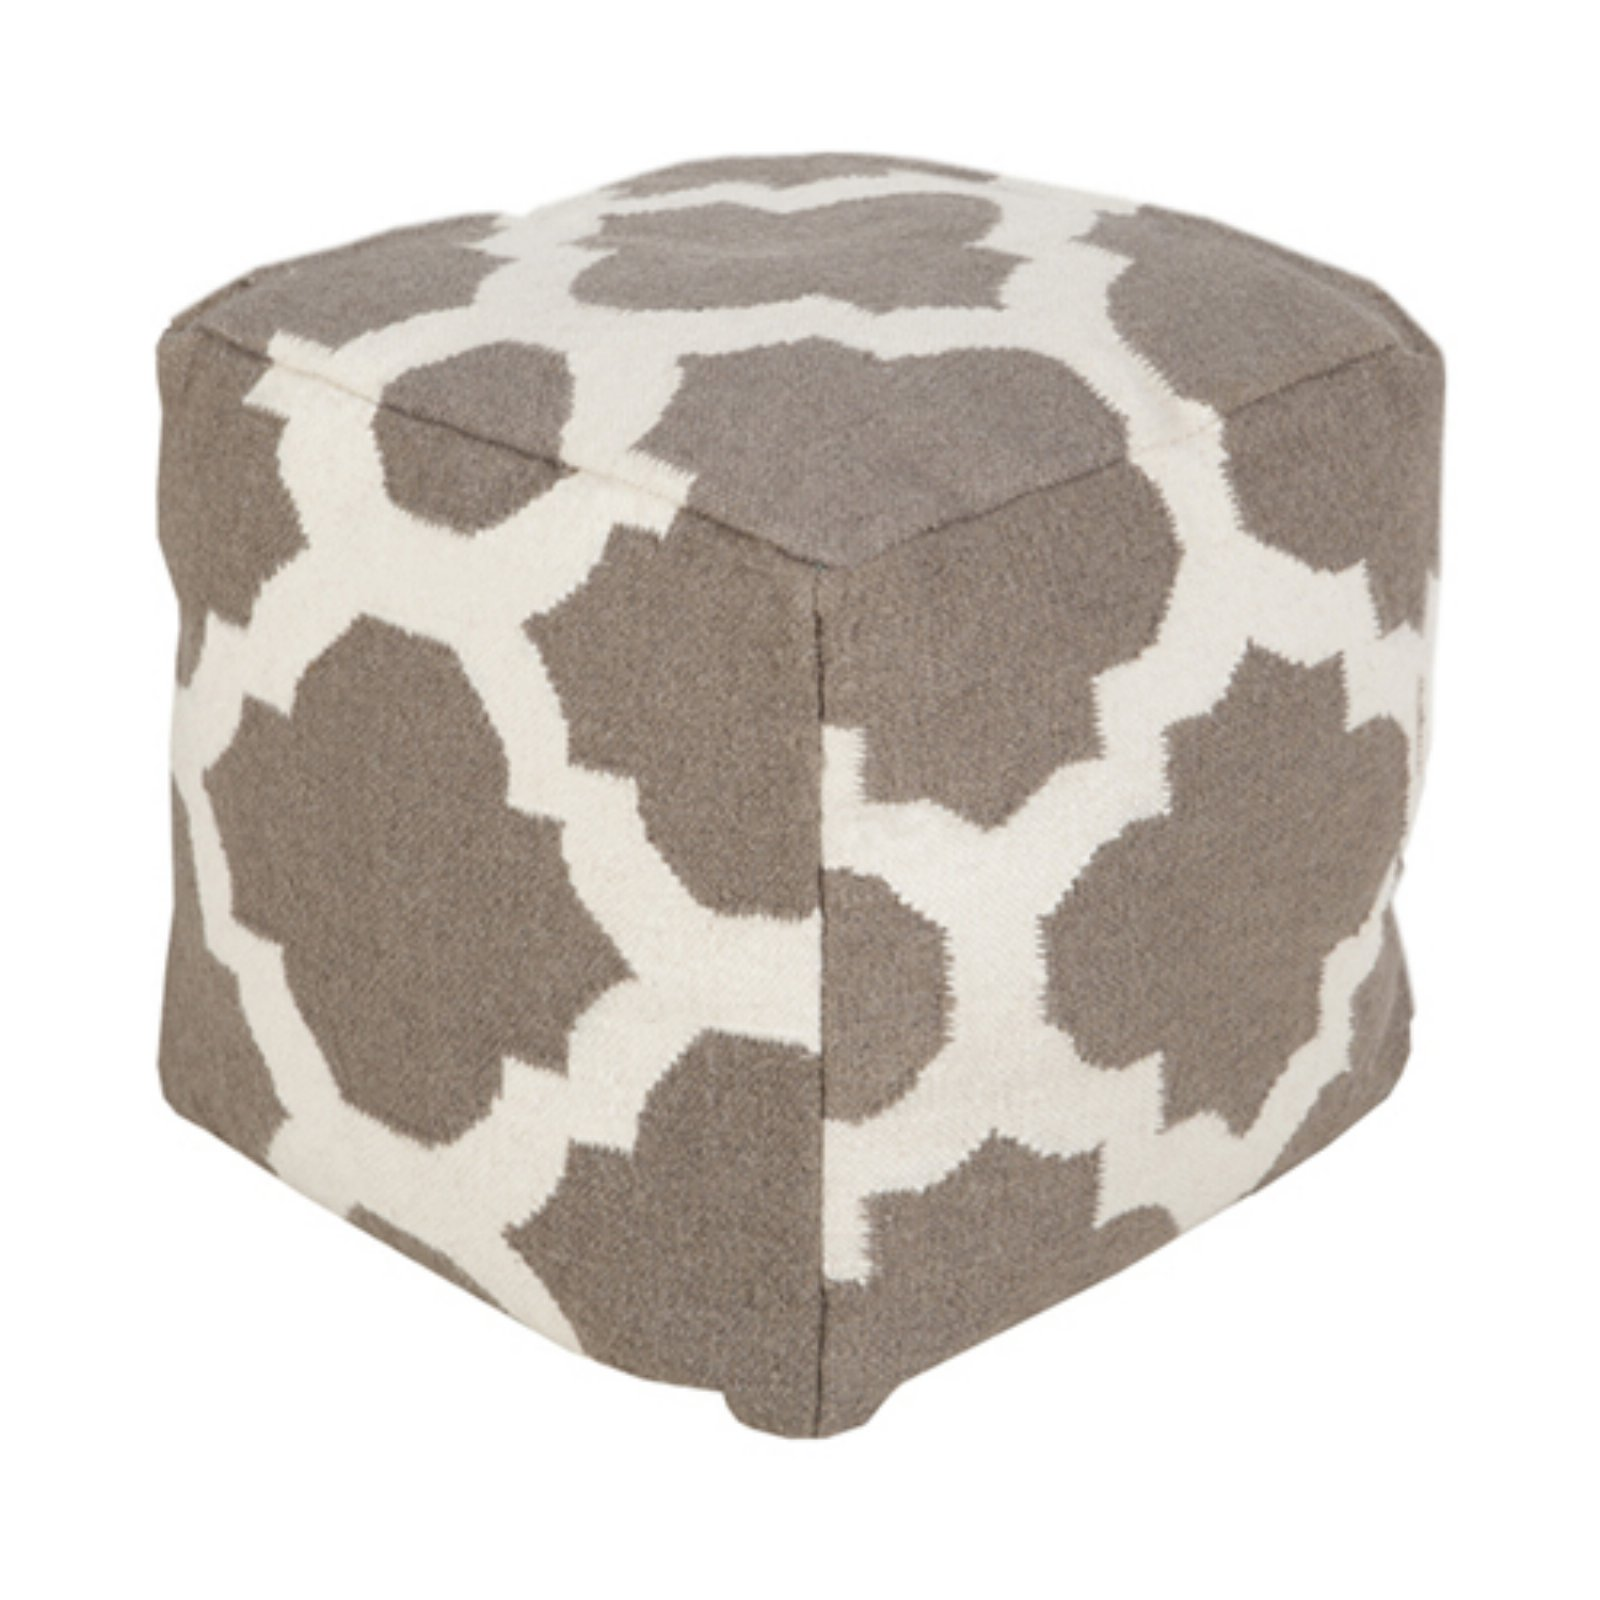 Surya 18 in. Morocco Cube Wool Pouf by Surya